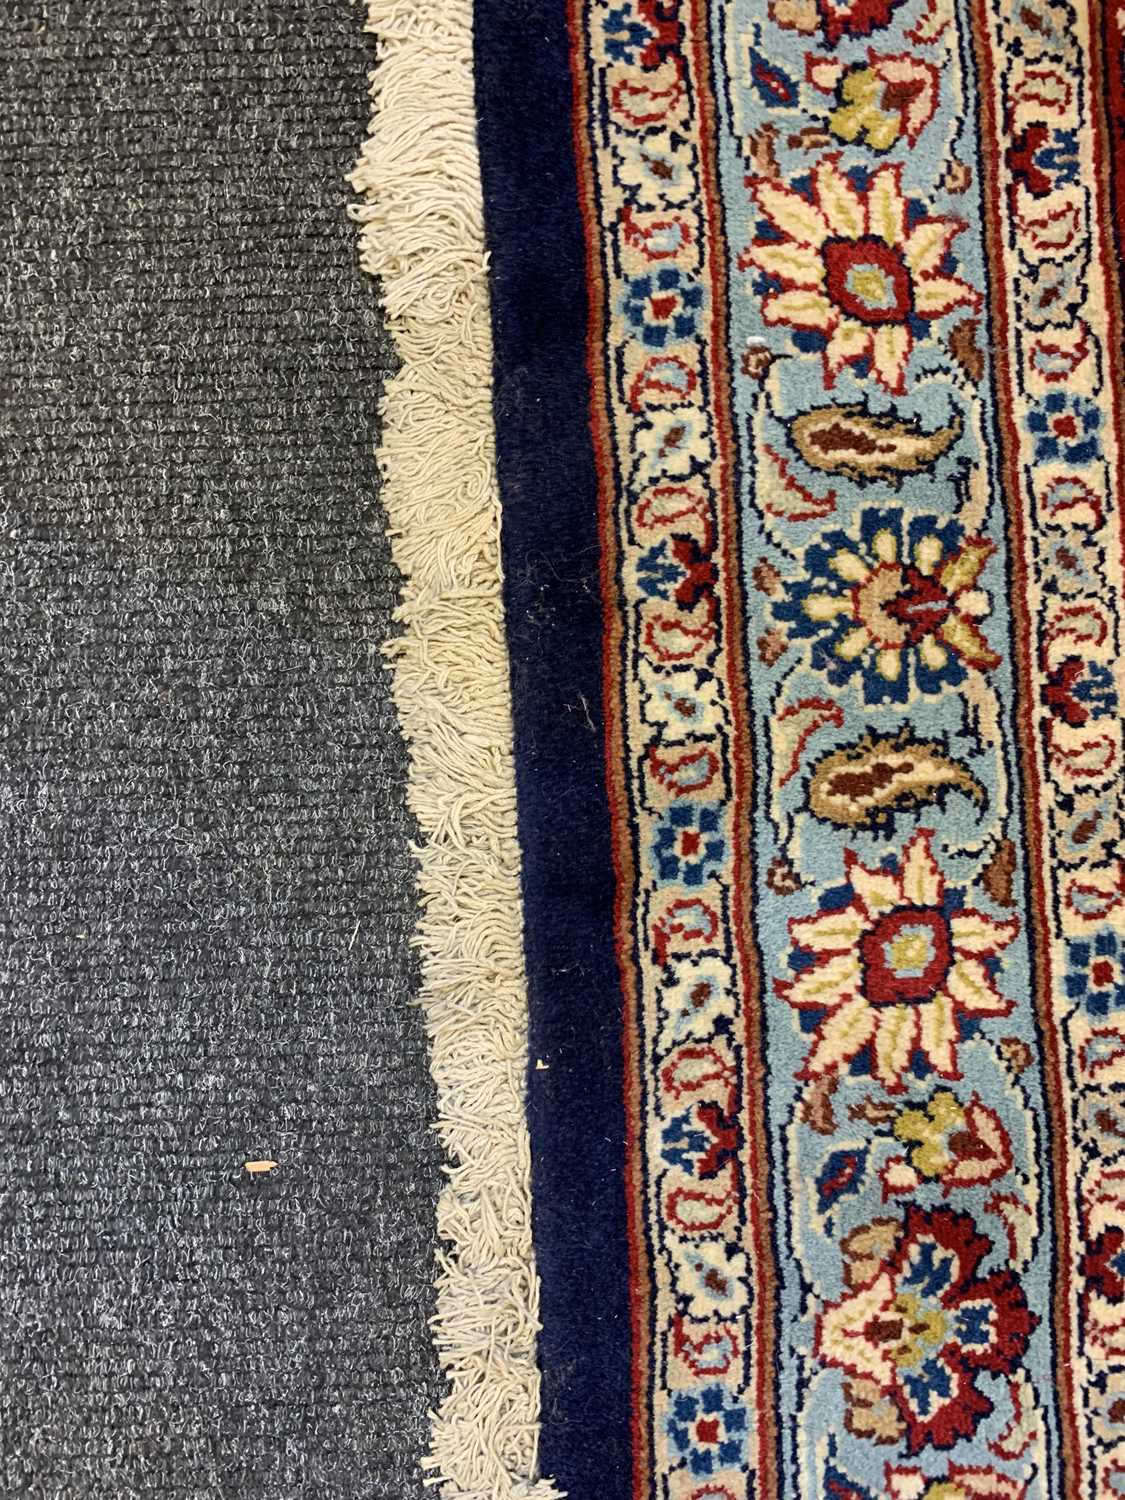 A large Persian Khorassan carpet, - Image 16 of 17